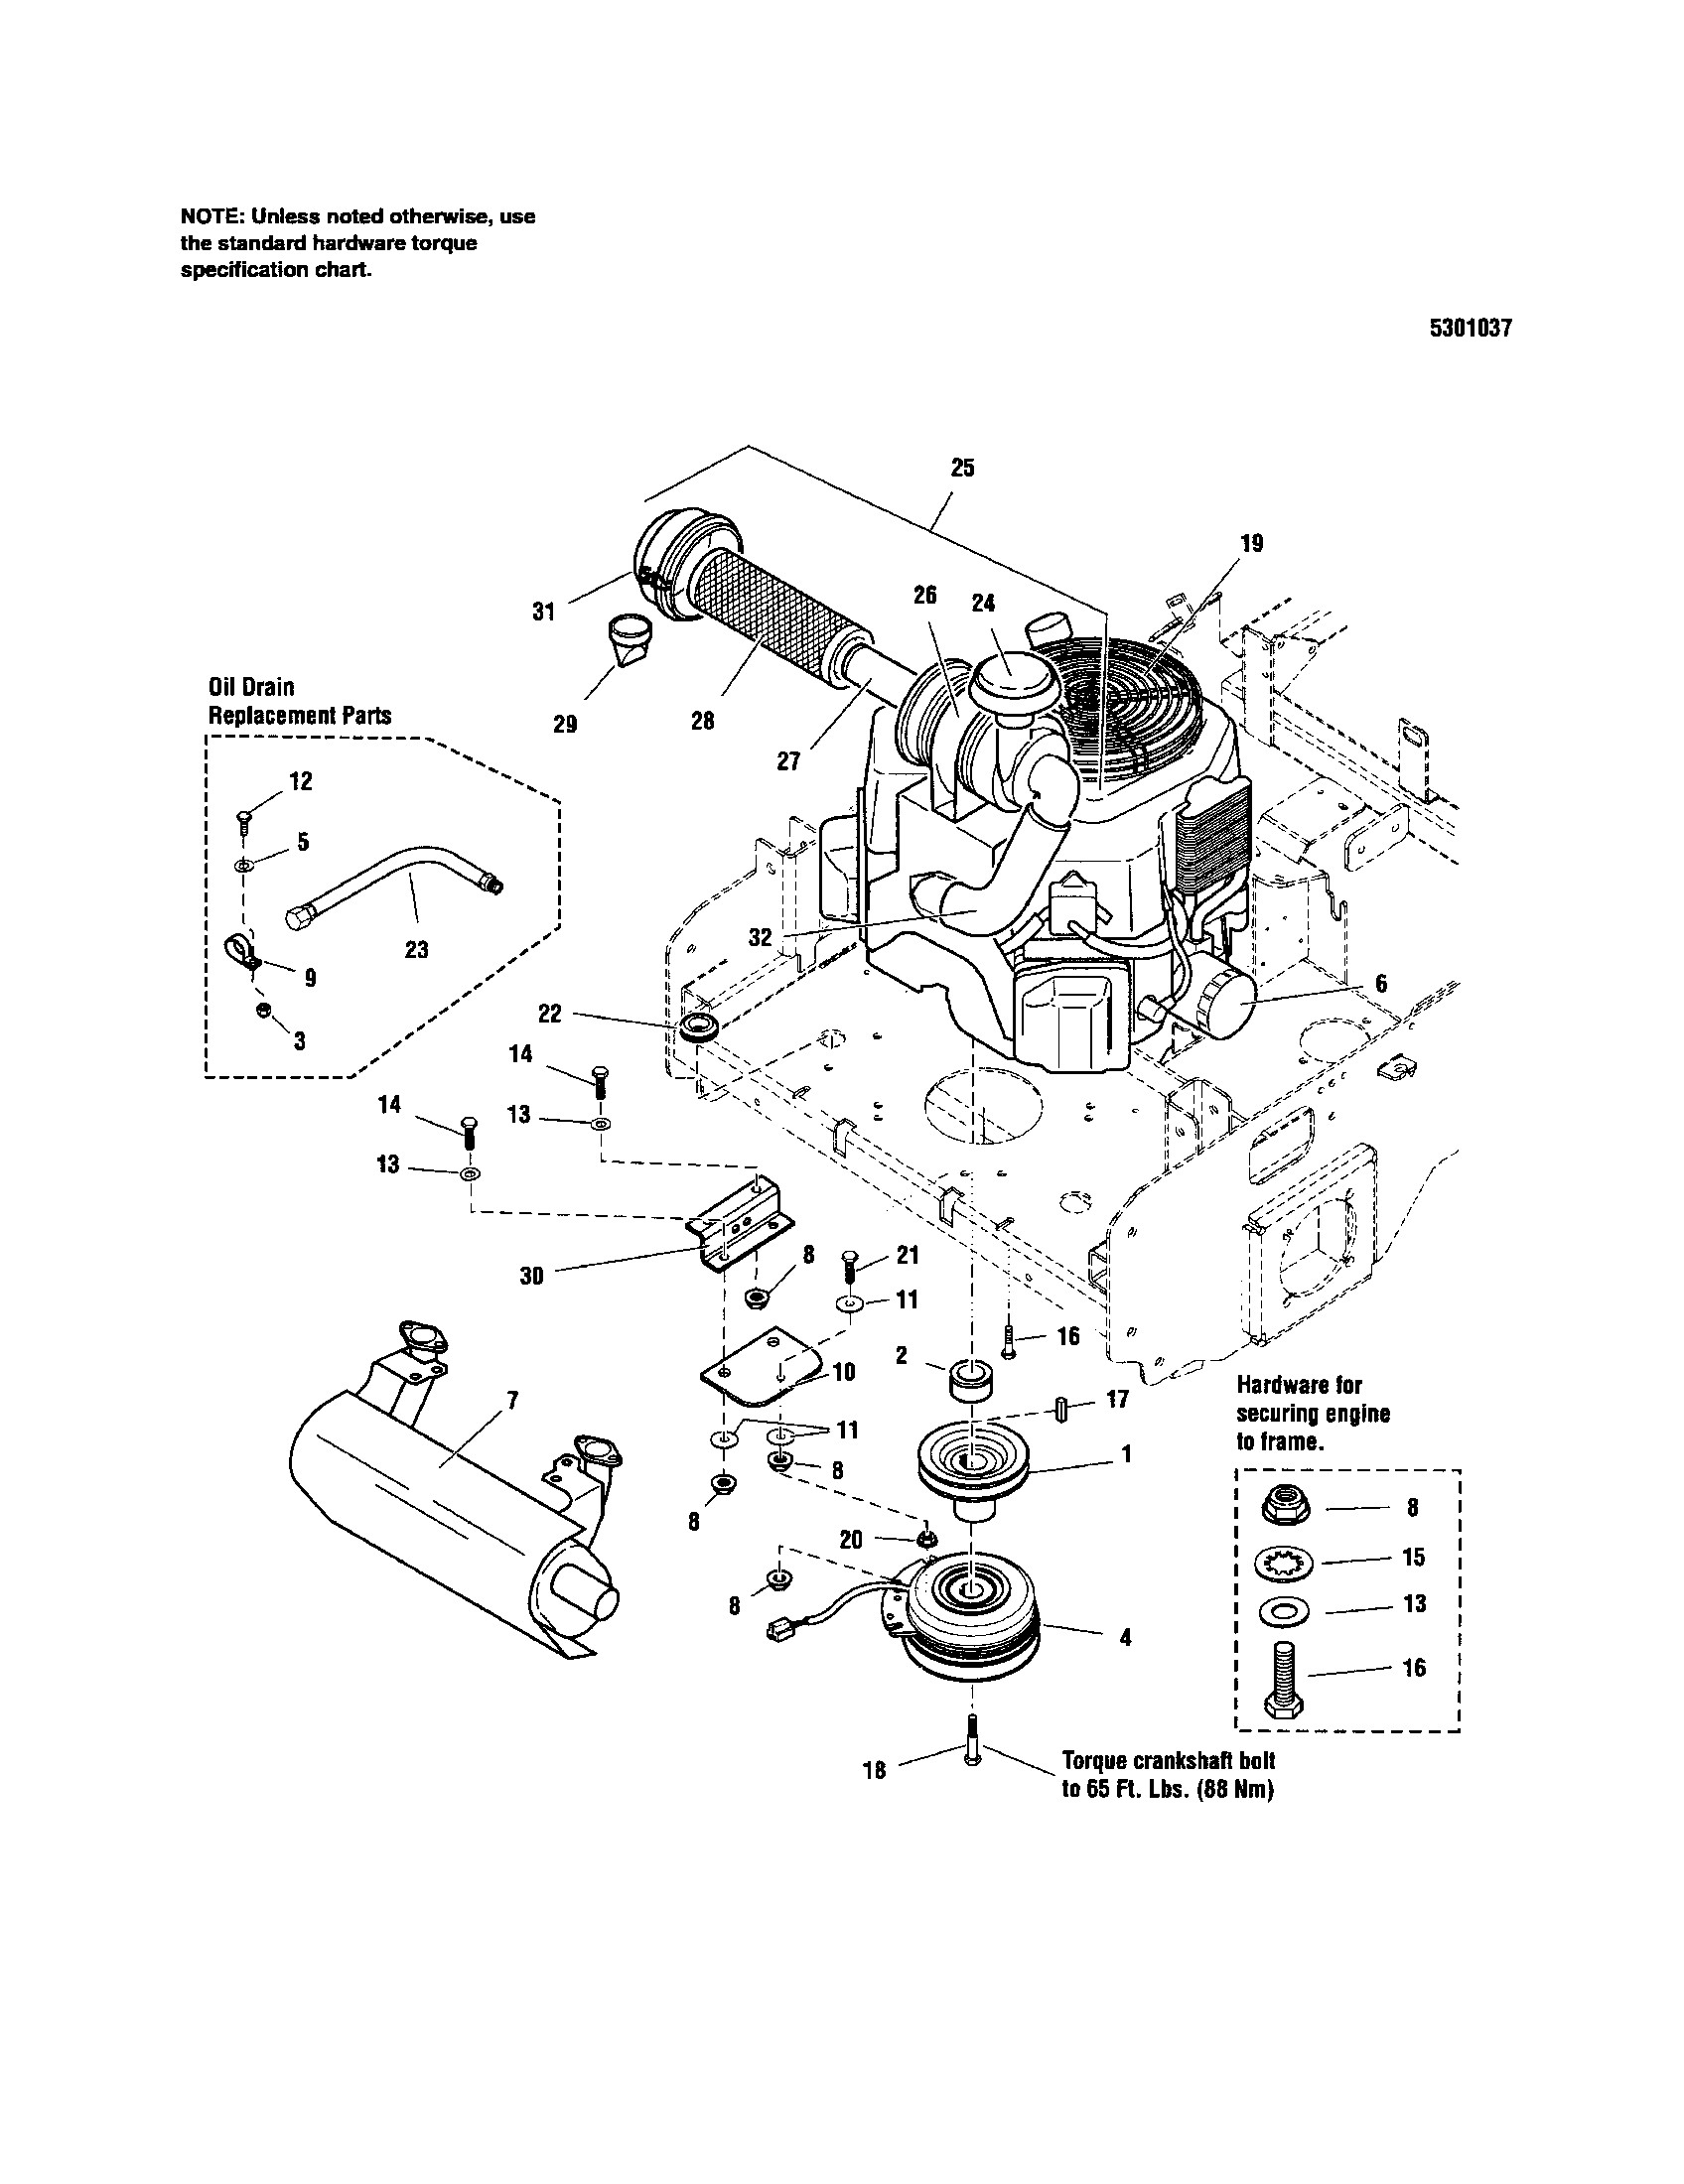 Kohler Magnum 12 Parts Manual